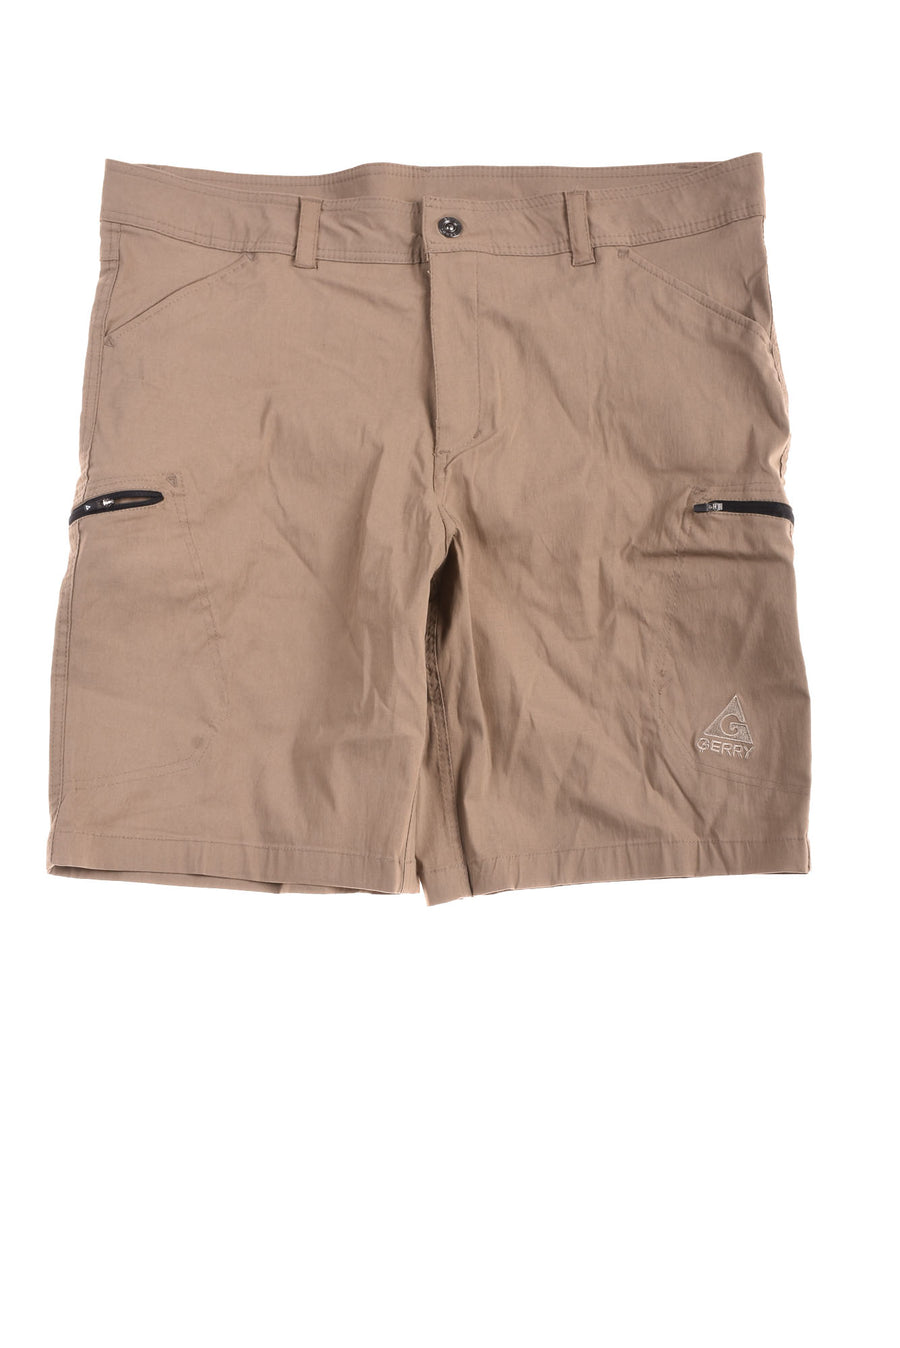 USED Gerry Men's Shorts 38 Khaki